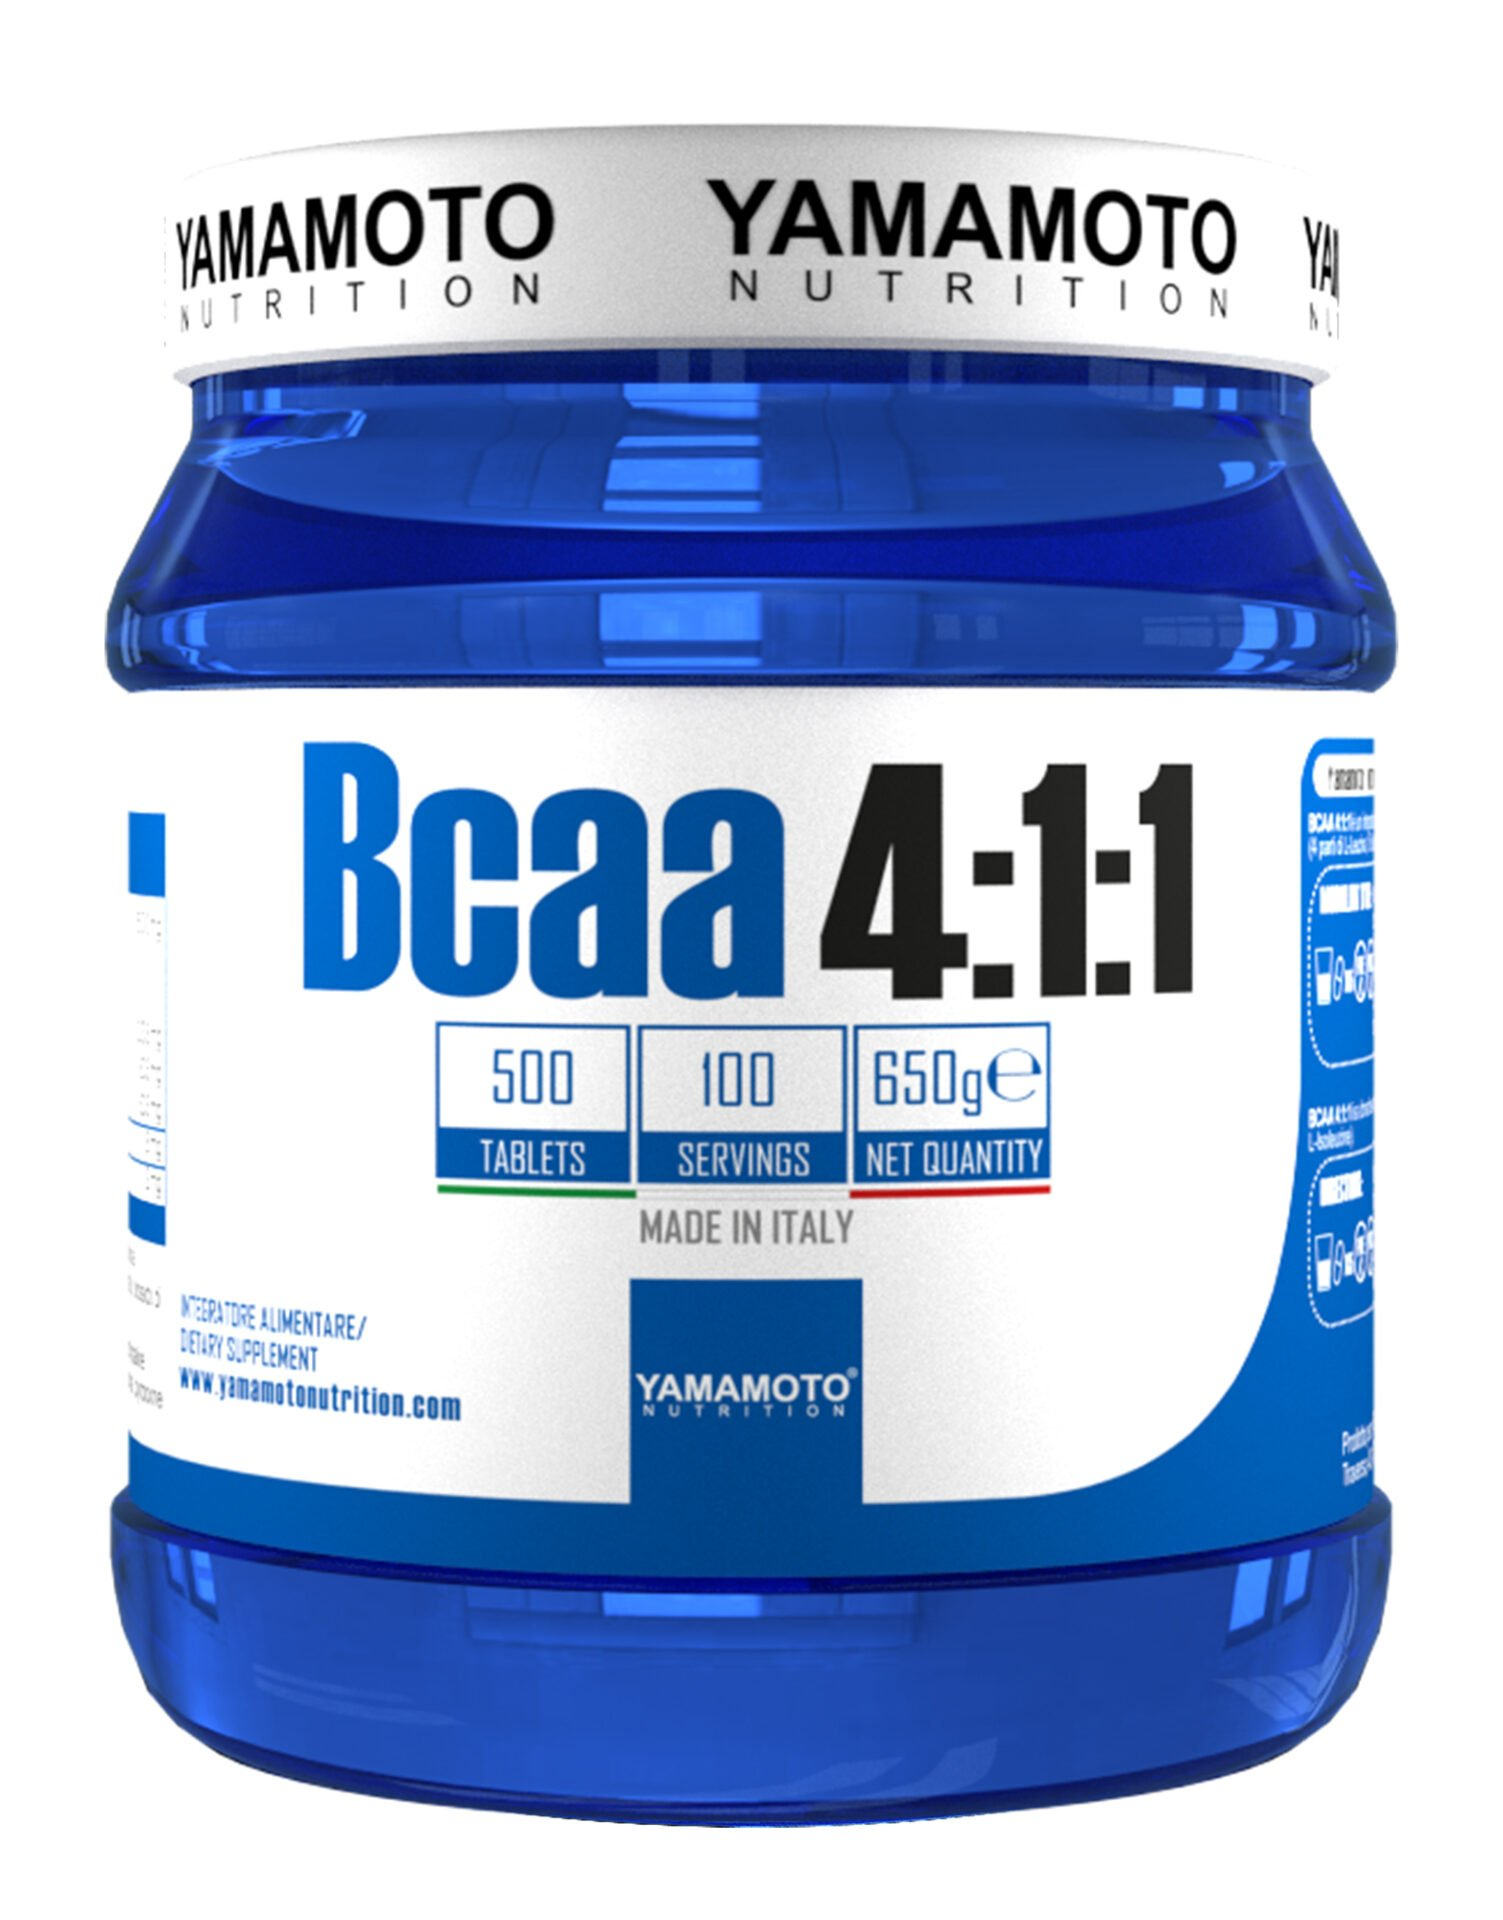 BCAA 4:1:1 – 500 tablets Amino Acids and BCAAs UKTSG bodybuilding supplements